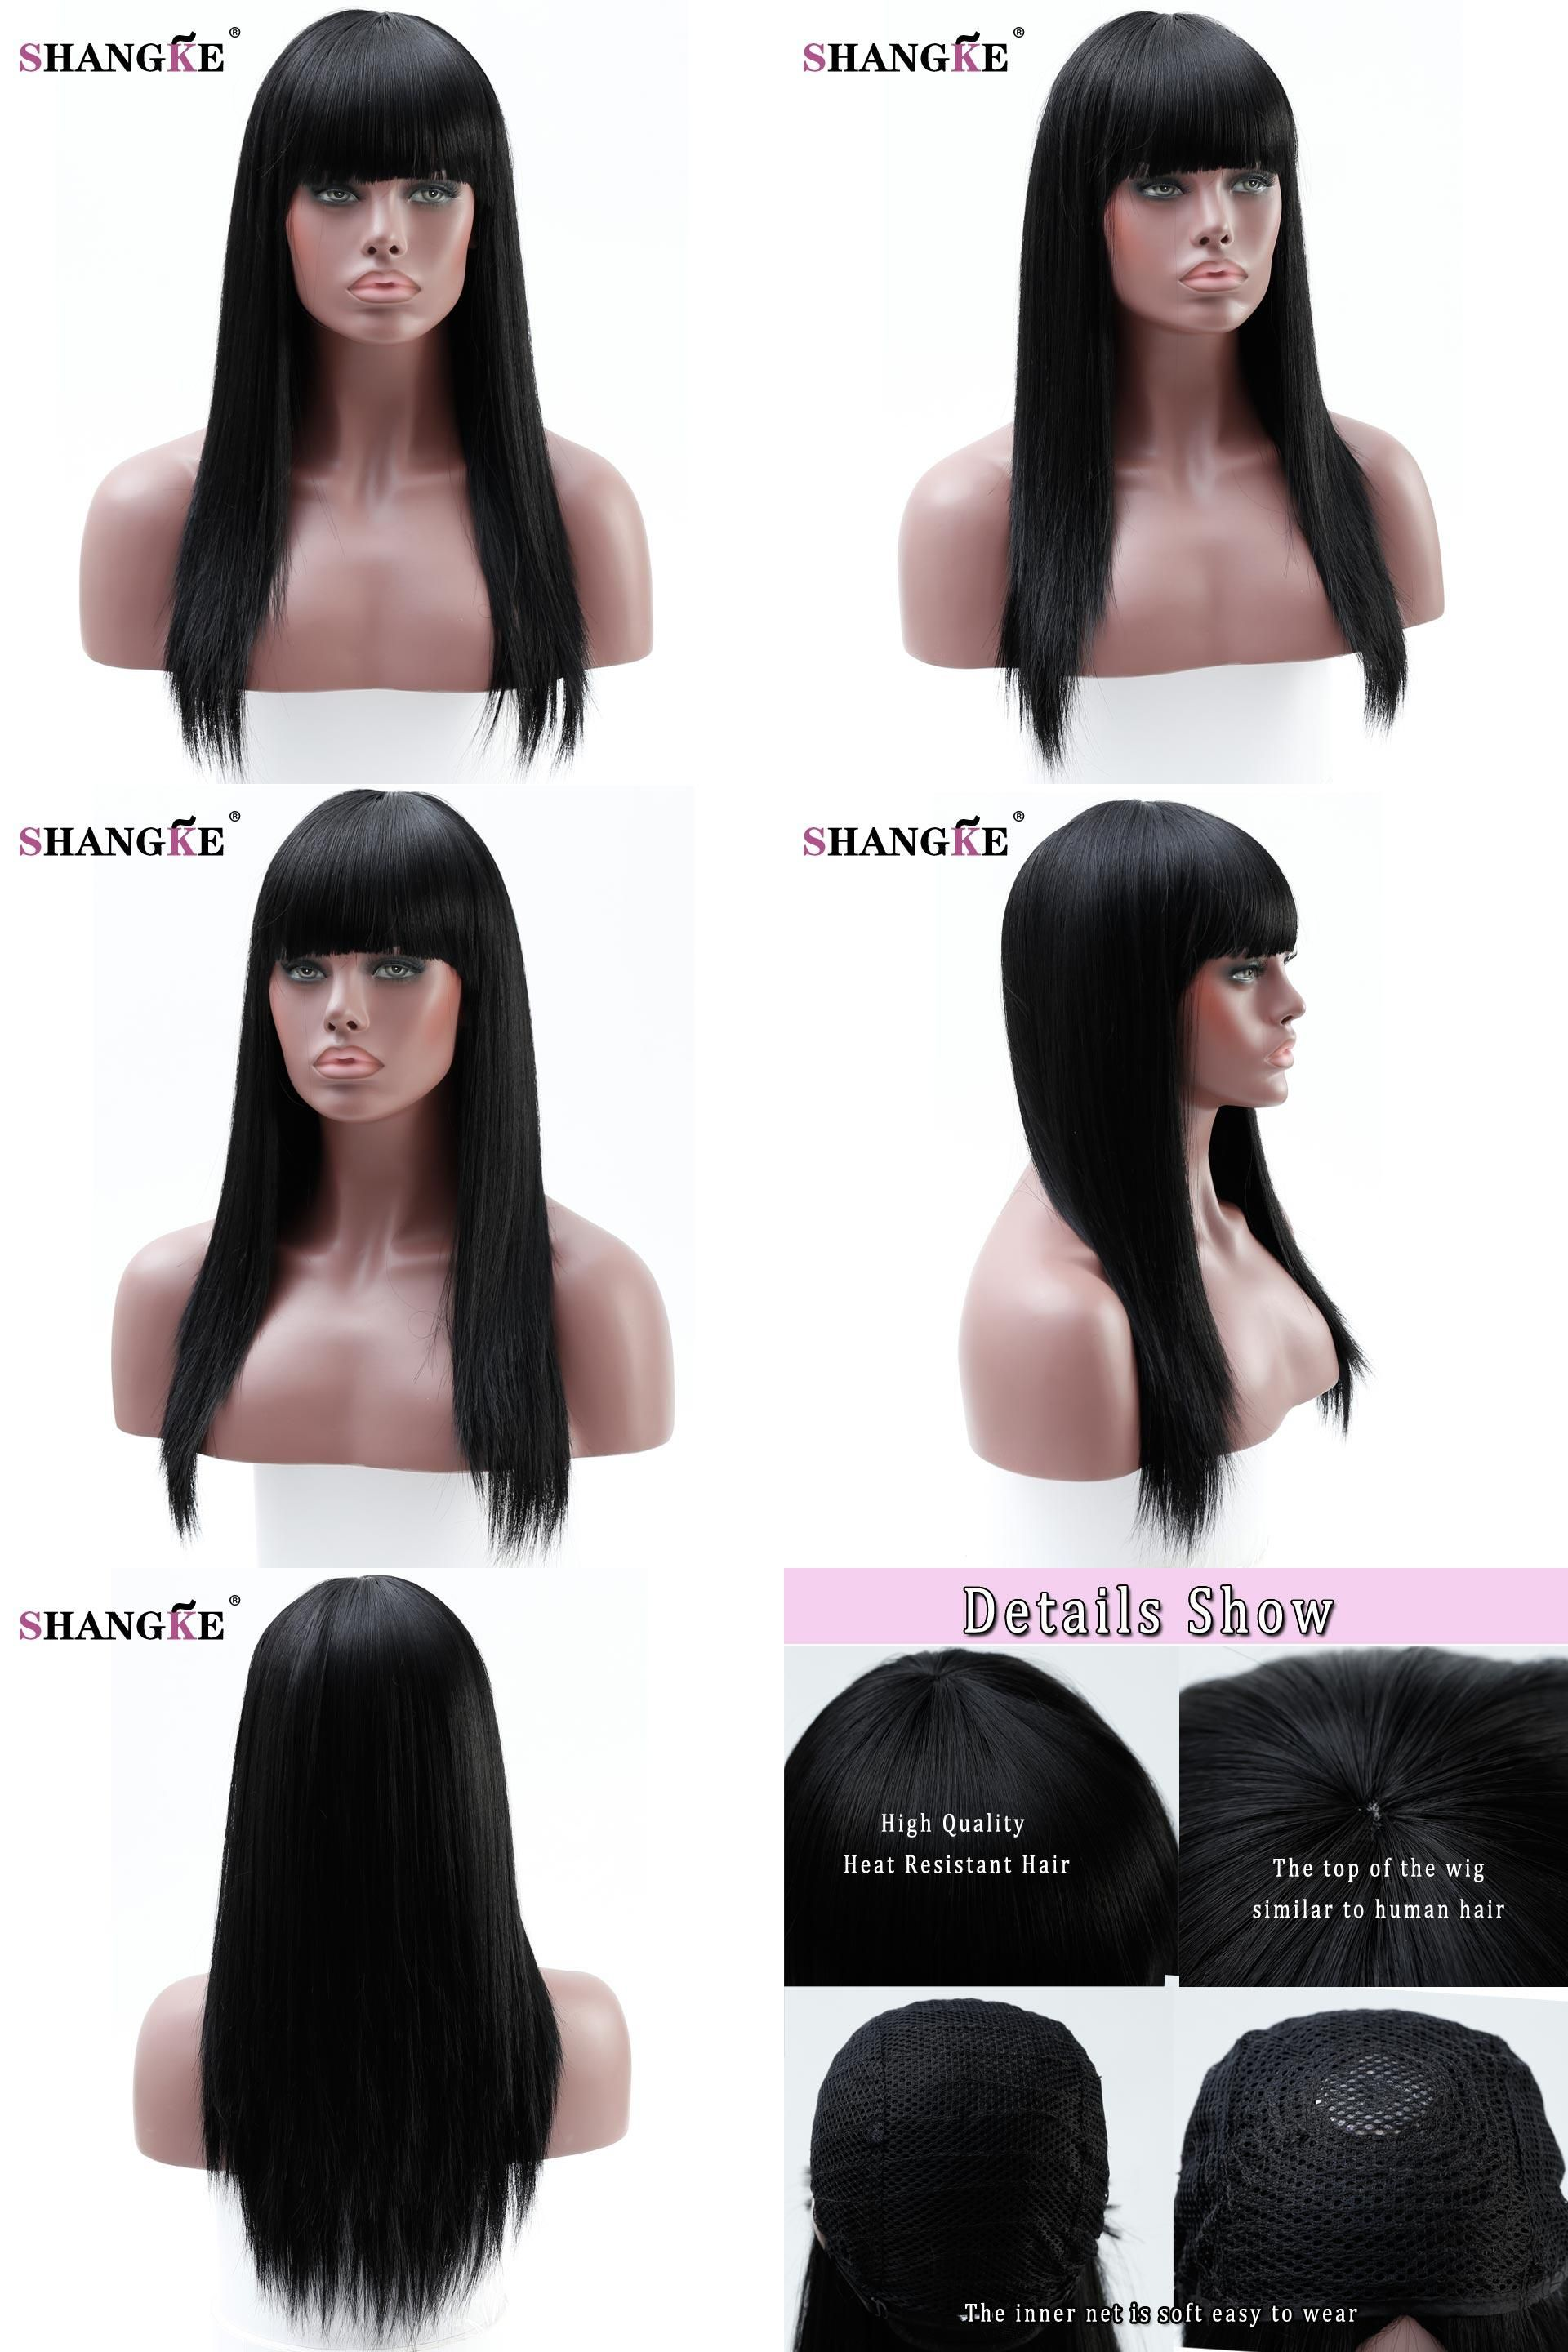 Visit To Buy Shangke 22 Long Straight Black Hair Wigs For Black Women Natural Heat Resistant Sy Black Hair Wigs Long Straight Black Hair Straight Black Hair